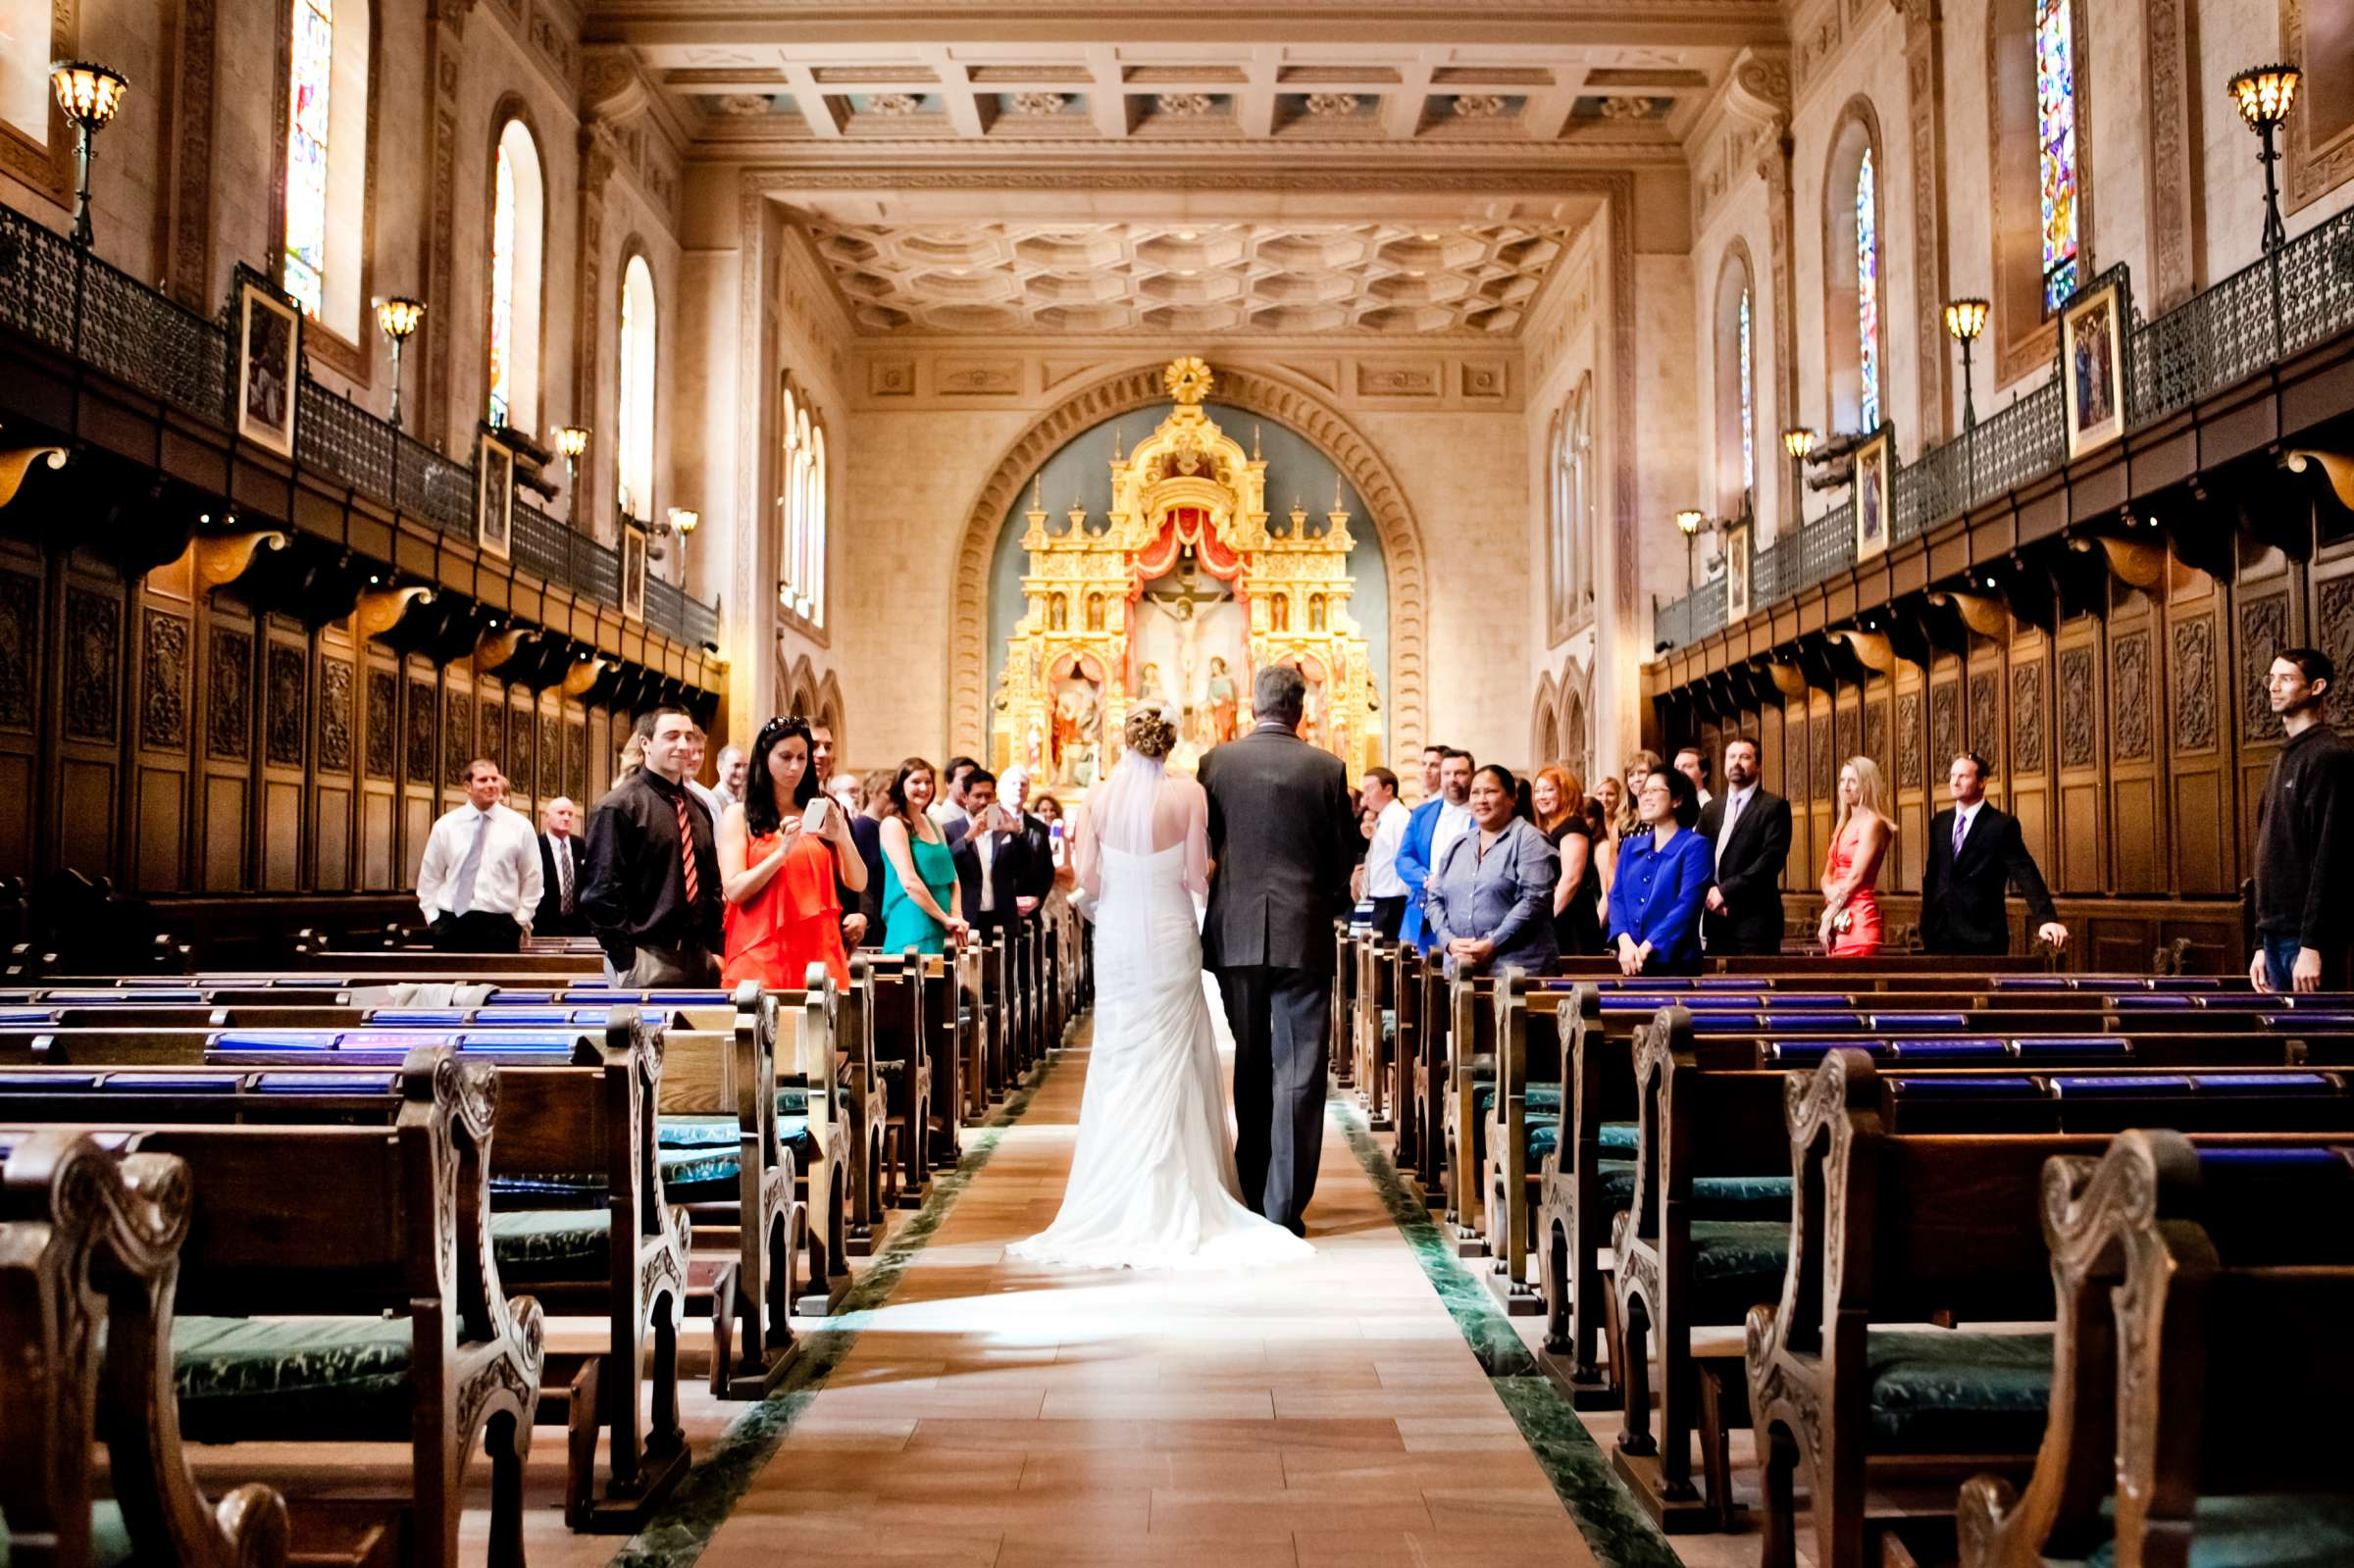 Church at Ultimate Skybox Wedding, Chelsea and Frank Wedding Photo #34 by True Photography